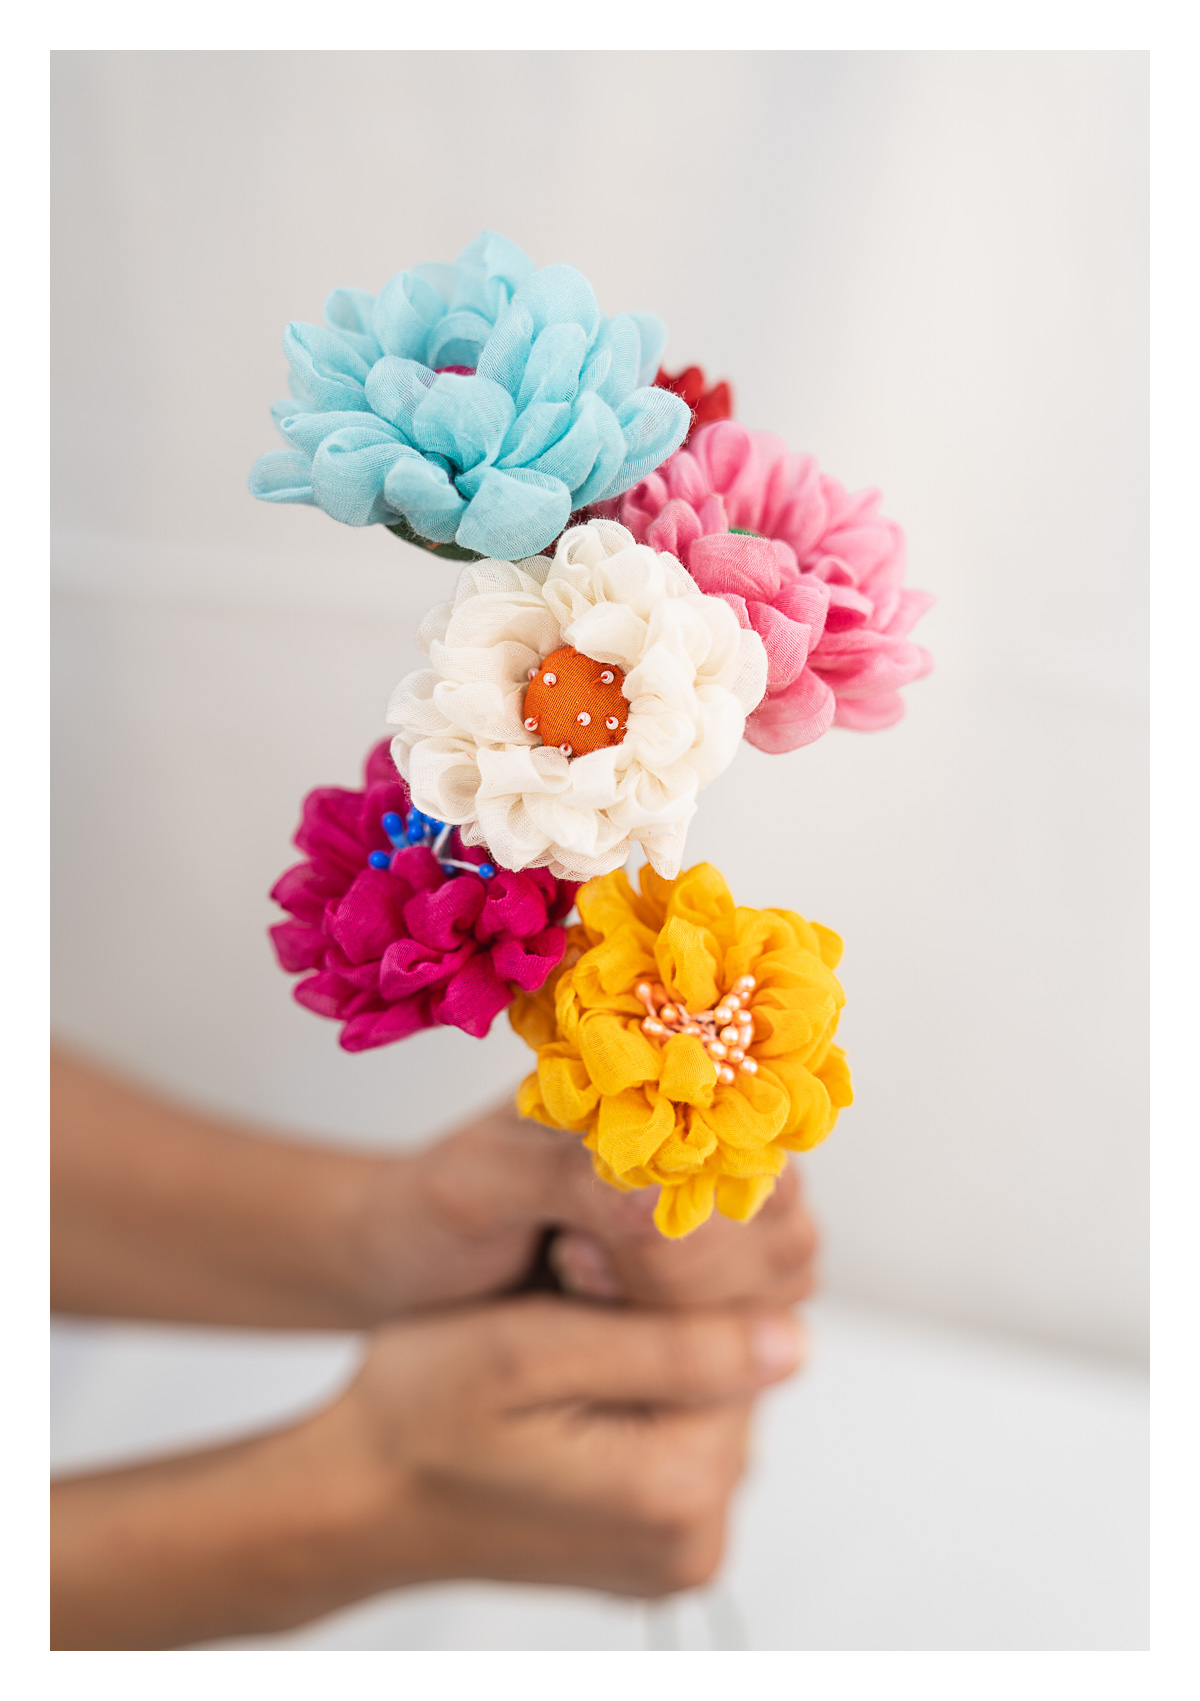 Aster Multicolor Handmade Textile Flowers Bunch